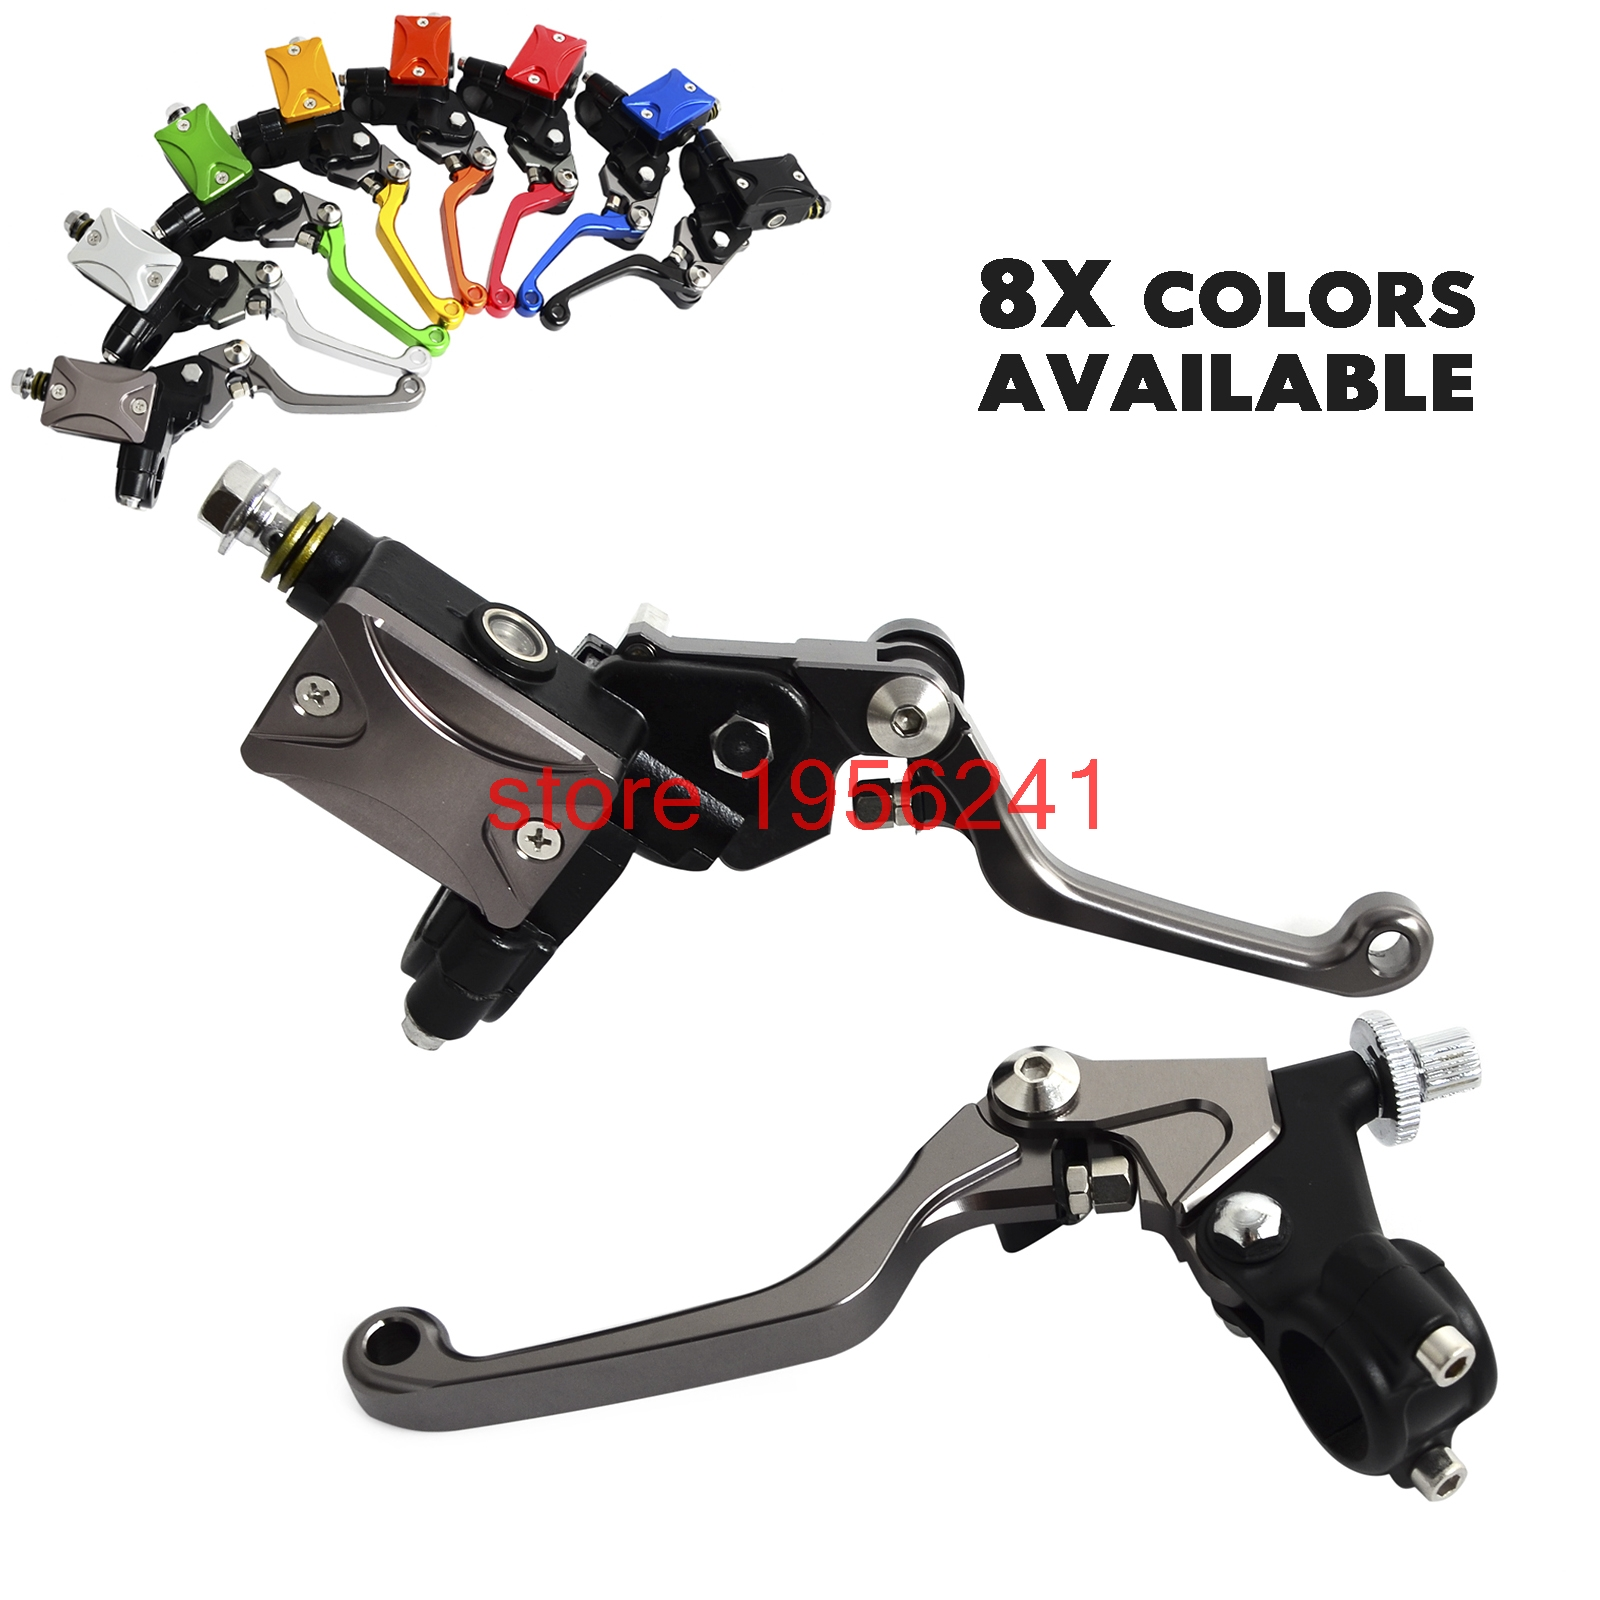 H2CNC Hydraulic Brake & Cable Clutch Lever Set Assembly For Suzuki RM85 RM125 RM250 RMZ250 RMZ450 DRZ450S DRZ450M RMX 250S 450Z cnc front brake line hose clamps holder for suzuki rm85 rm125 rm250 rmz250 rmz450 rmx450z drz400sm motorcycle